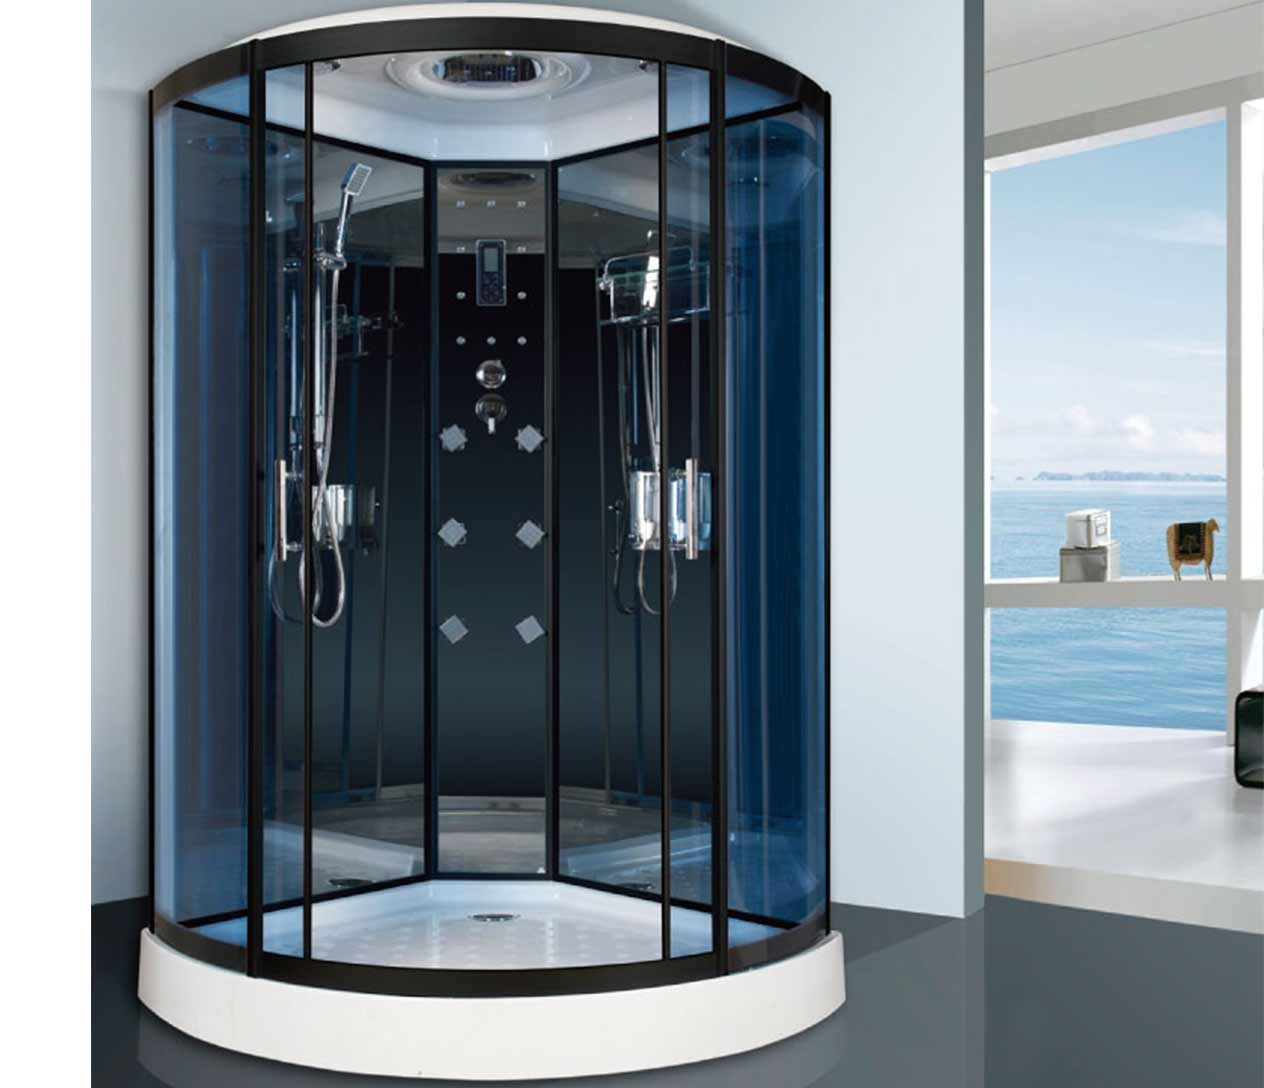 E 37 steam shower luxury spas inc - Luxury steam showers ...